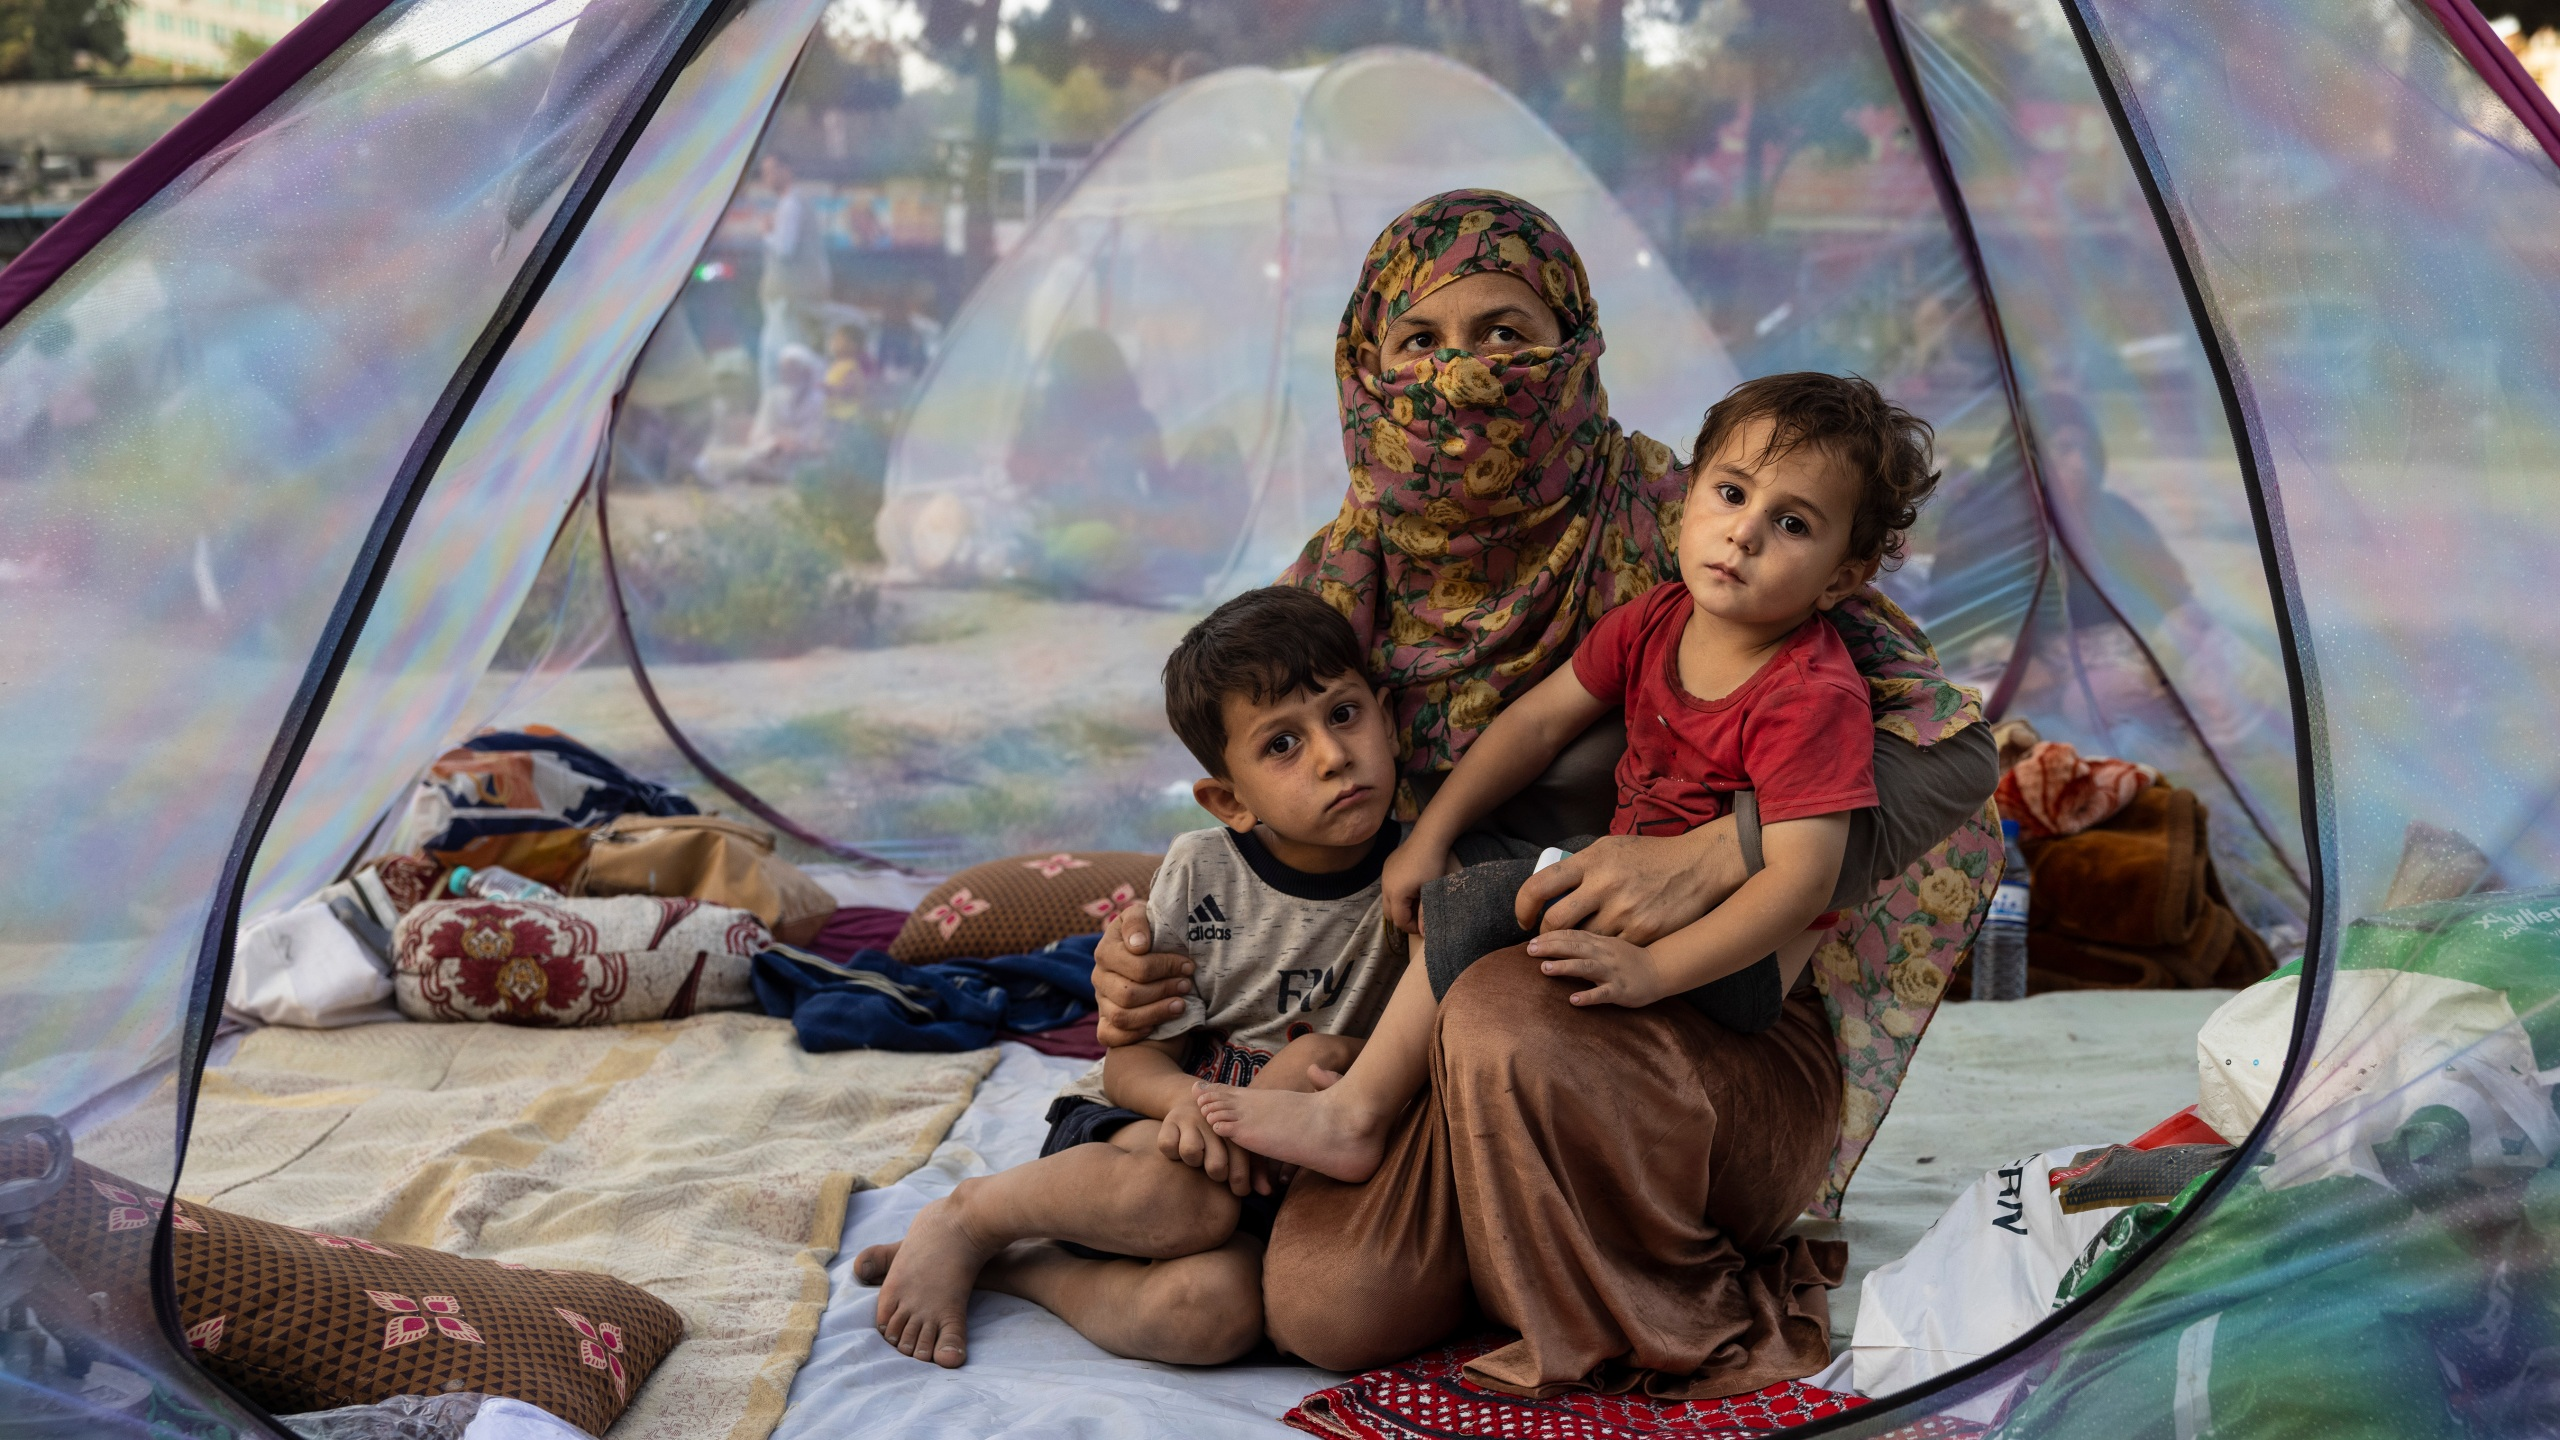 Farzia, 28, who lost her husband in Baghlan one week ago to fighting by the Taliban sits with her children, Subhan, 5, and Ismael ,2, in a tent at a makeshift IDP camp in Share-e-Naw park to various mosques and schools on August 12, 2021 in Kabul, Afghanistan. (Paula Bronstein/Getty Images)